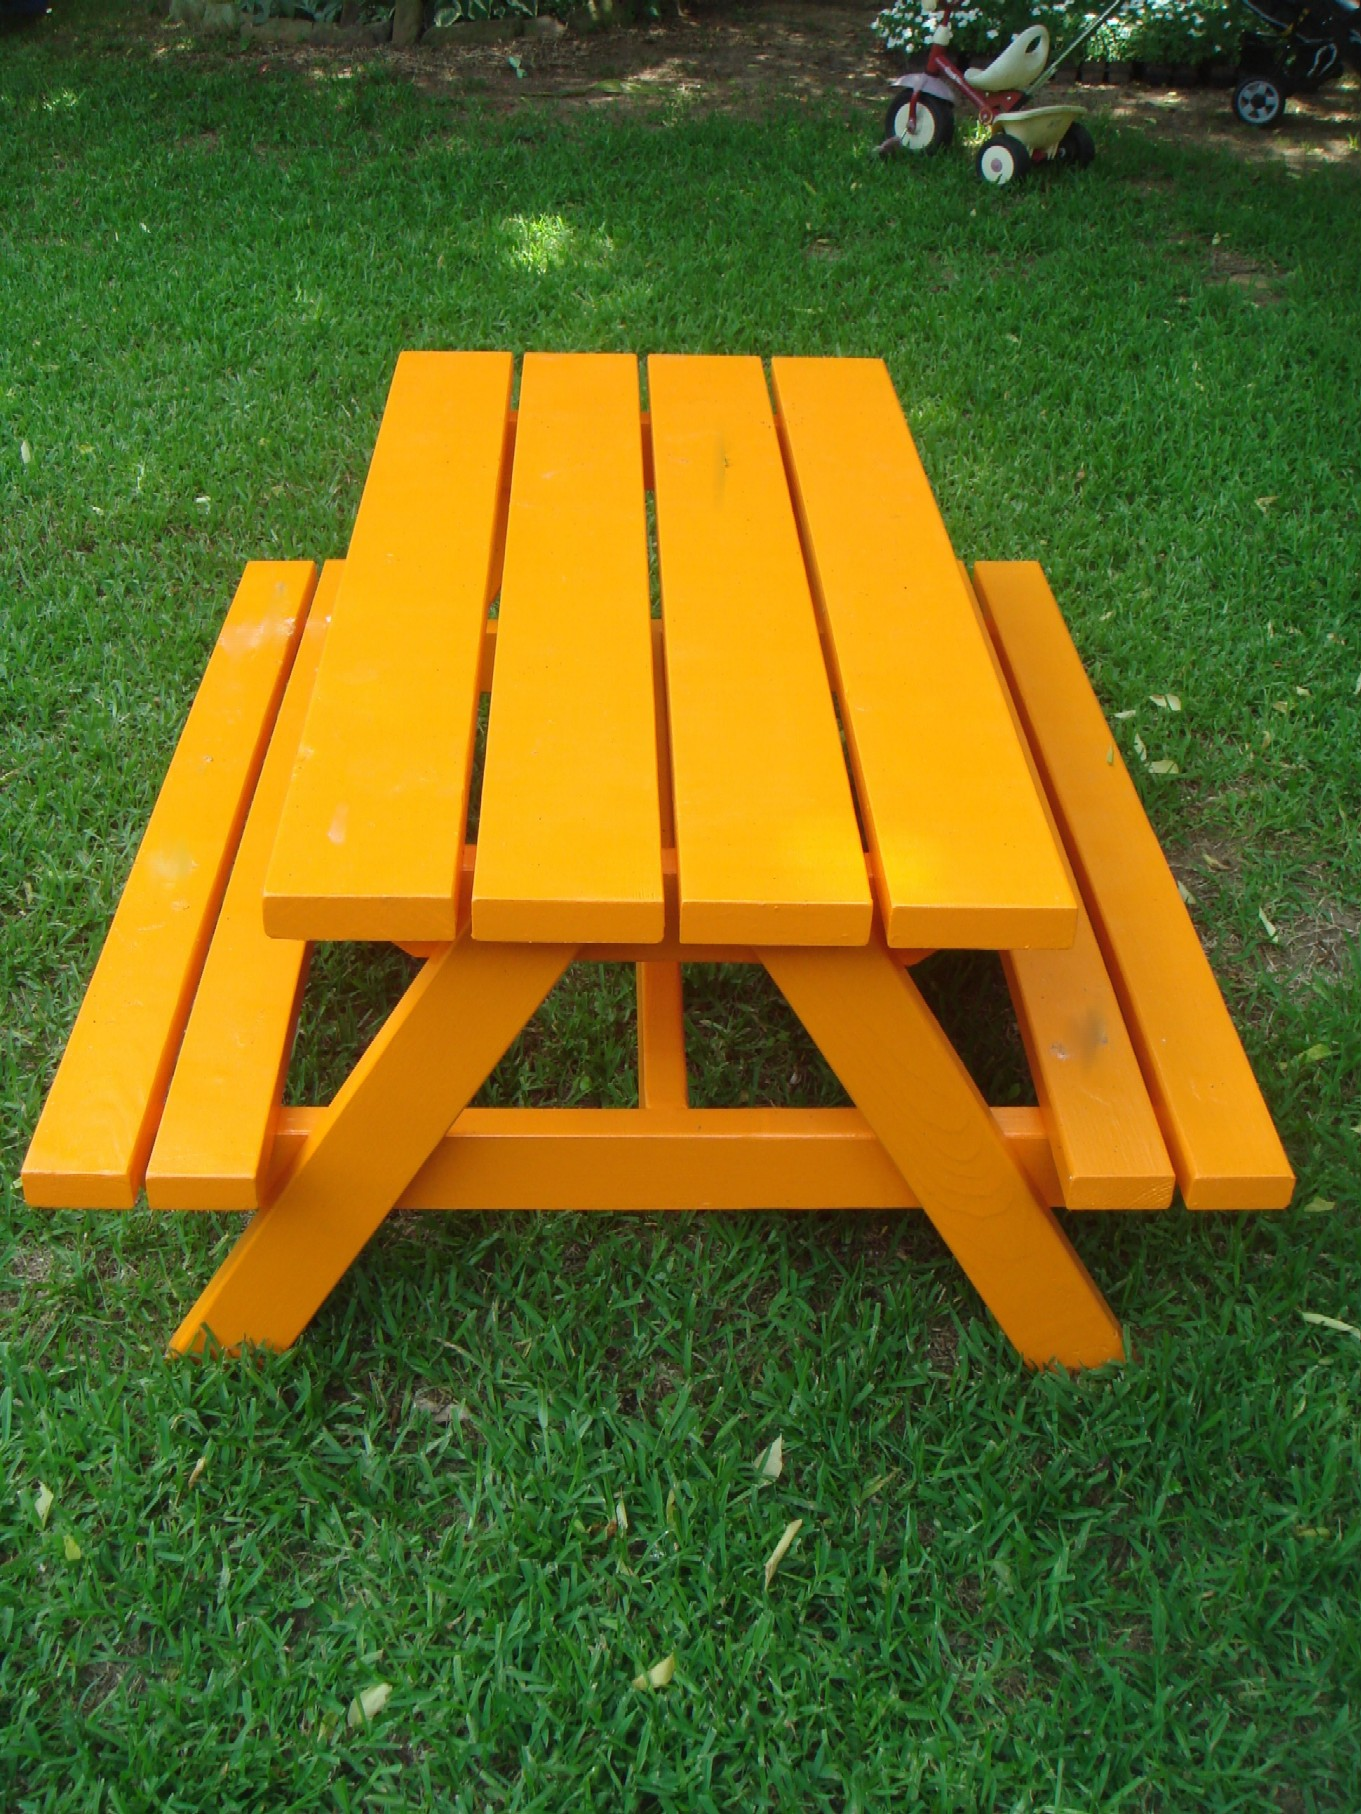 30 Built It Yourself Log Cabin Plans I Absolutely Like: Picnic Tables - DIY Projects